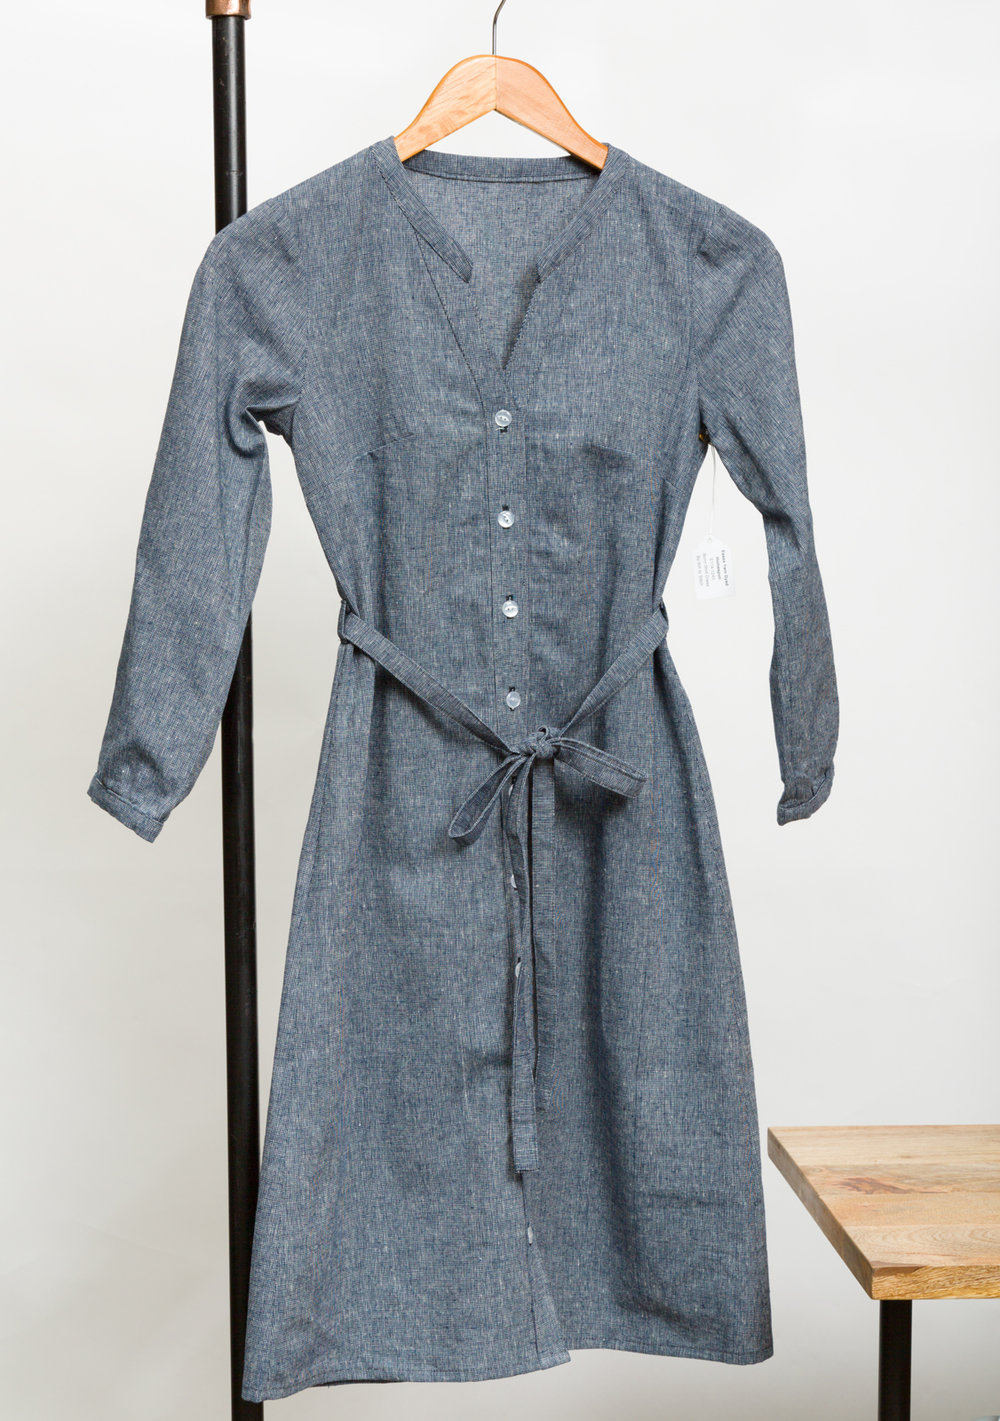 BONN SHIRT DRESS DESIGNED BY ITCH TO STITCH, MADE BY PINK SUEDE SHOE, FEATURING ESSEX YARN DYED HOMESPUN(E114-1243)